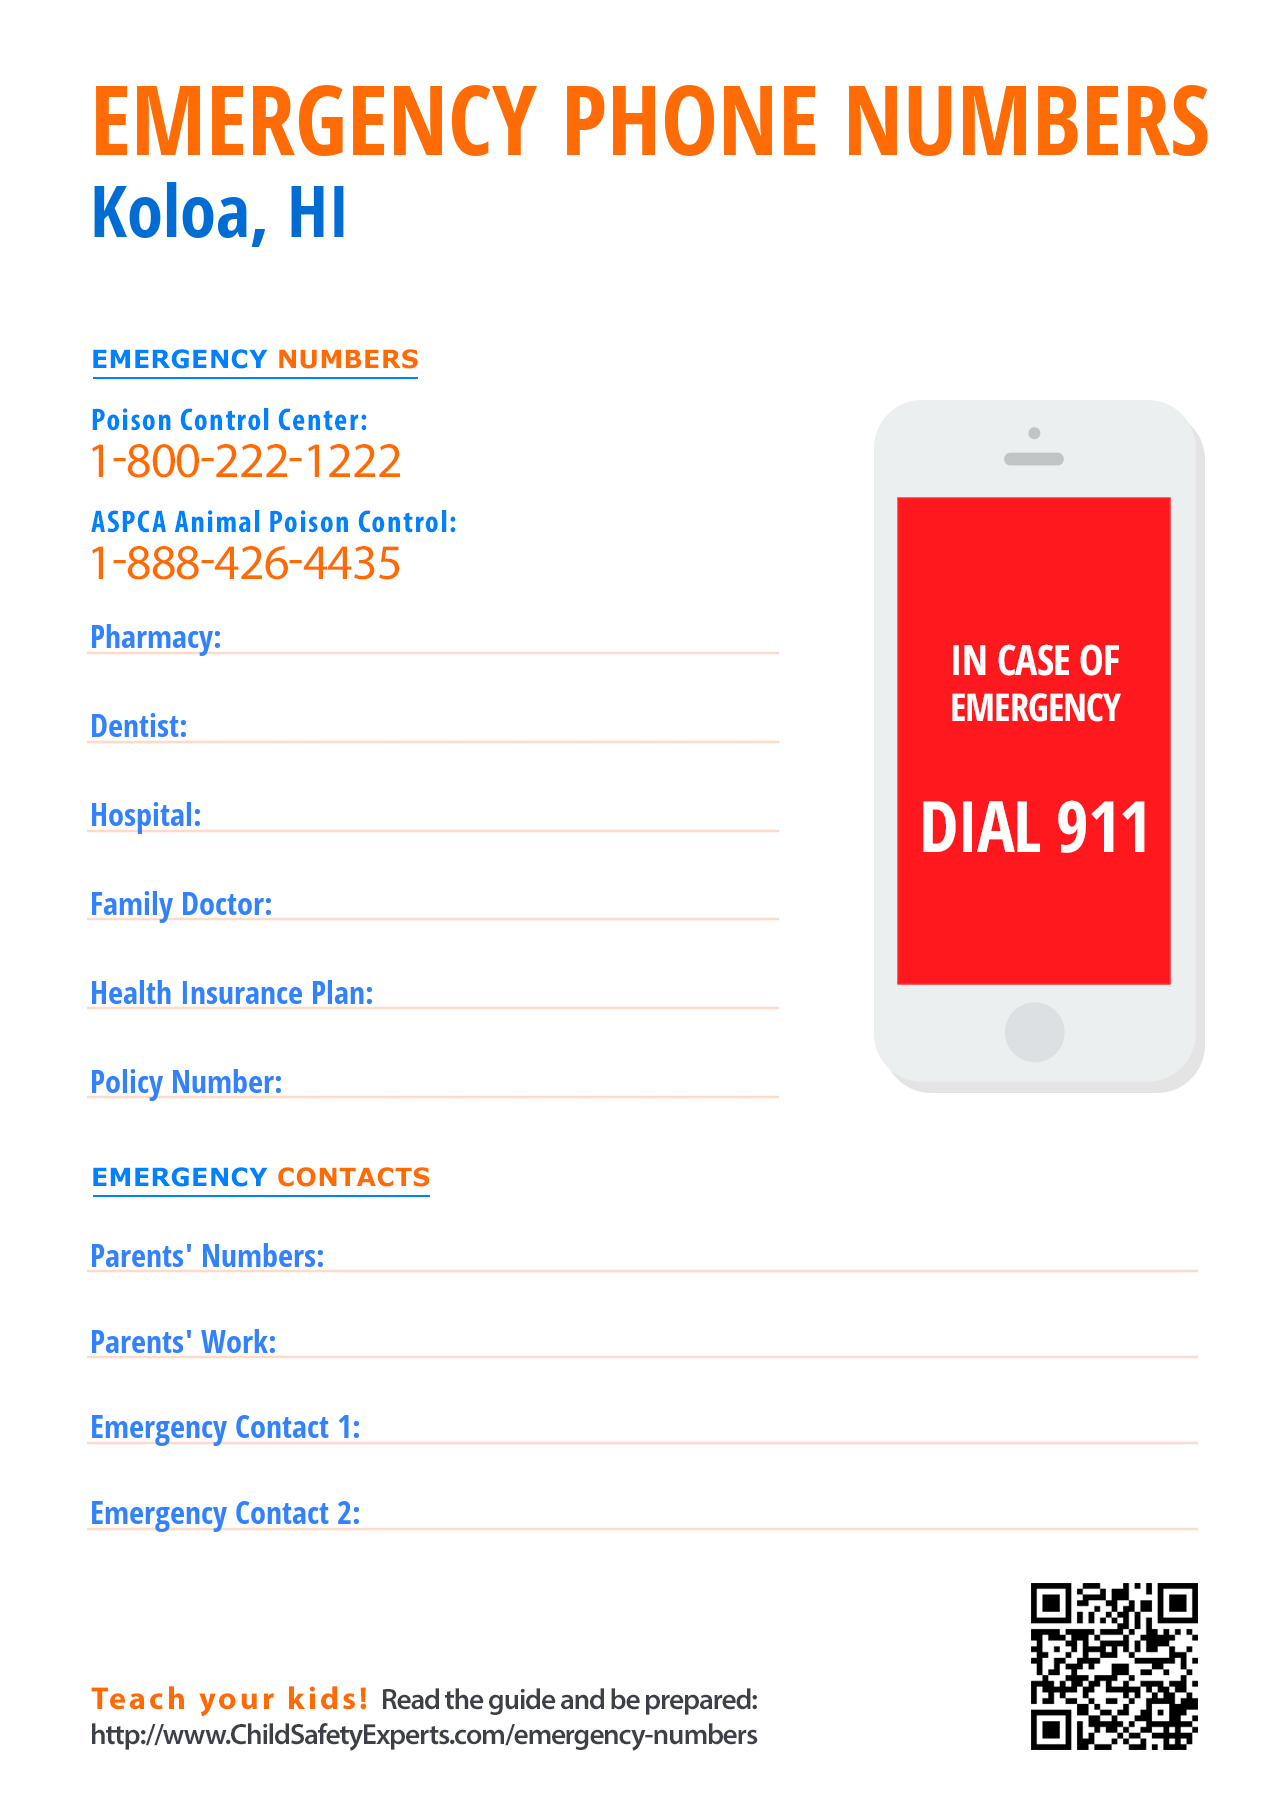 Important emergency phone numbers in Koloa, Hawaii